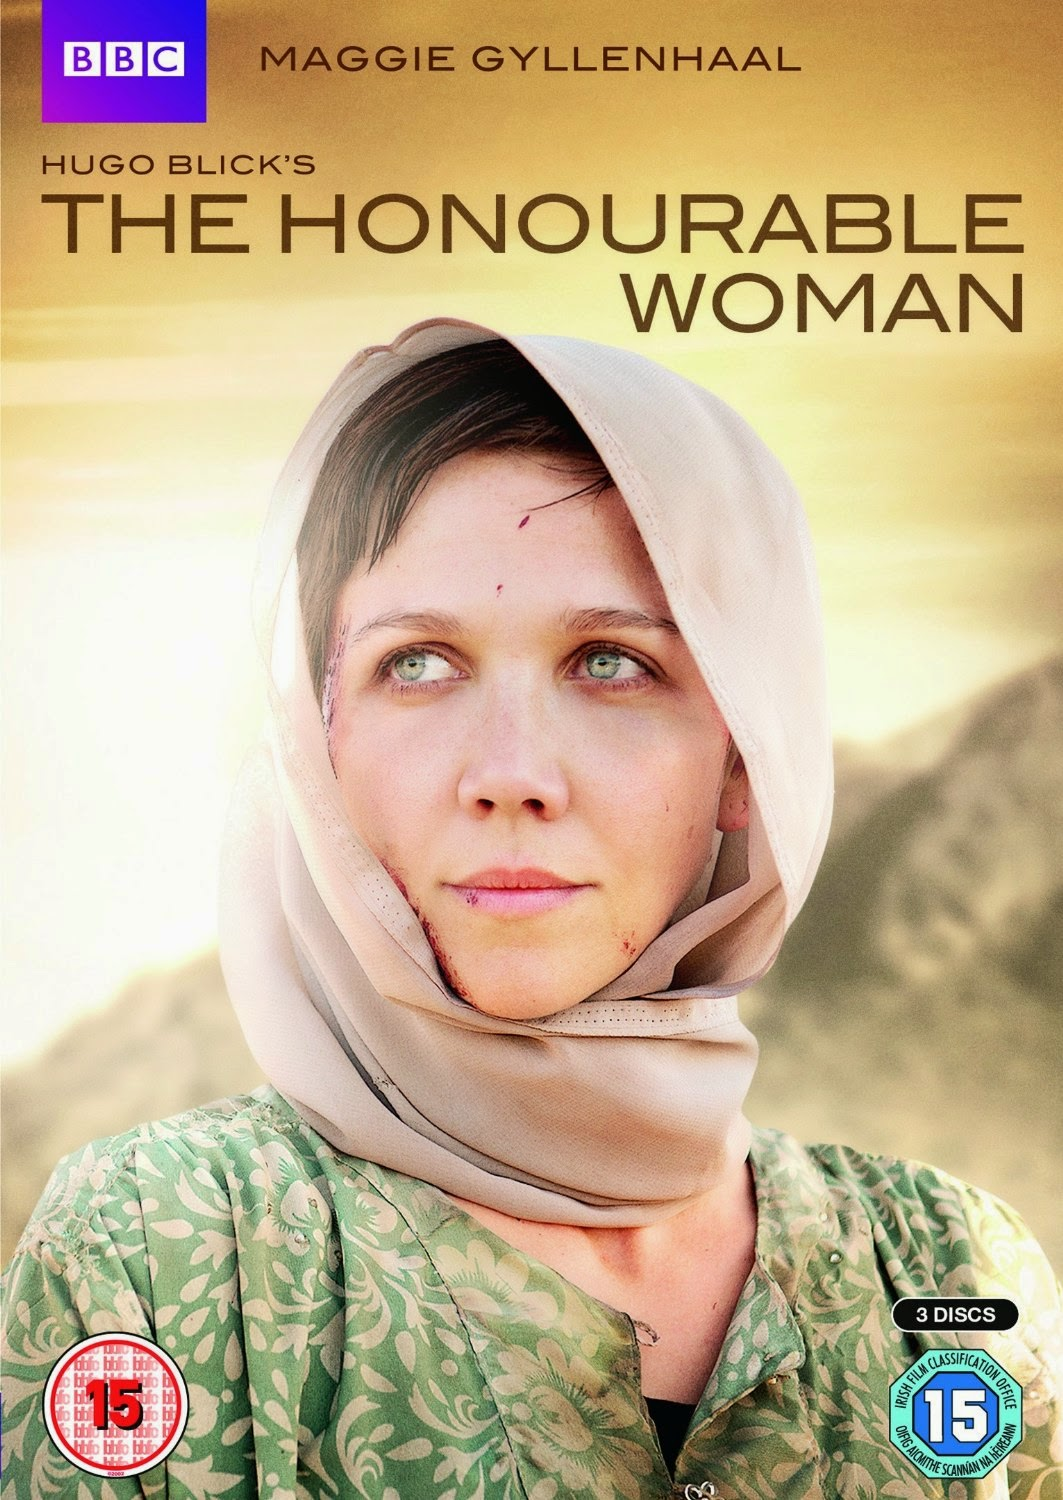 The Custard TV: The Honourable Woman reaches its conclusion  Honorable